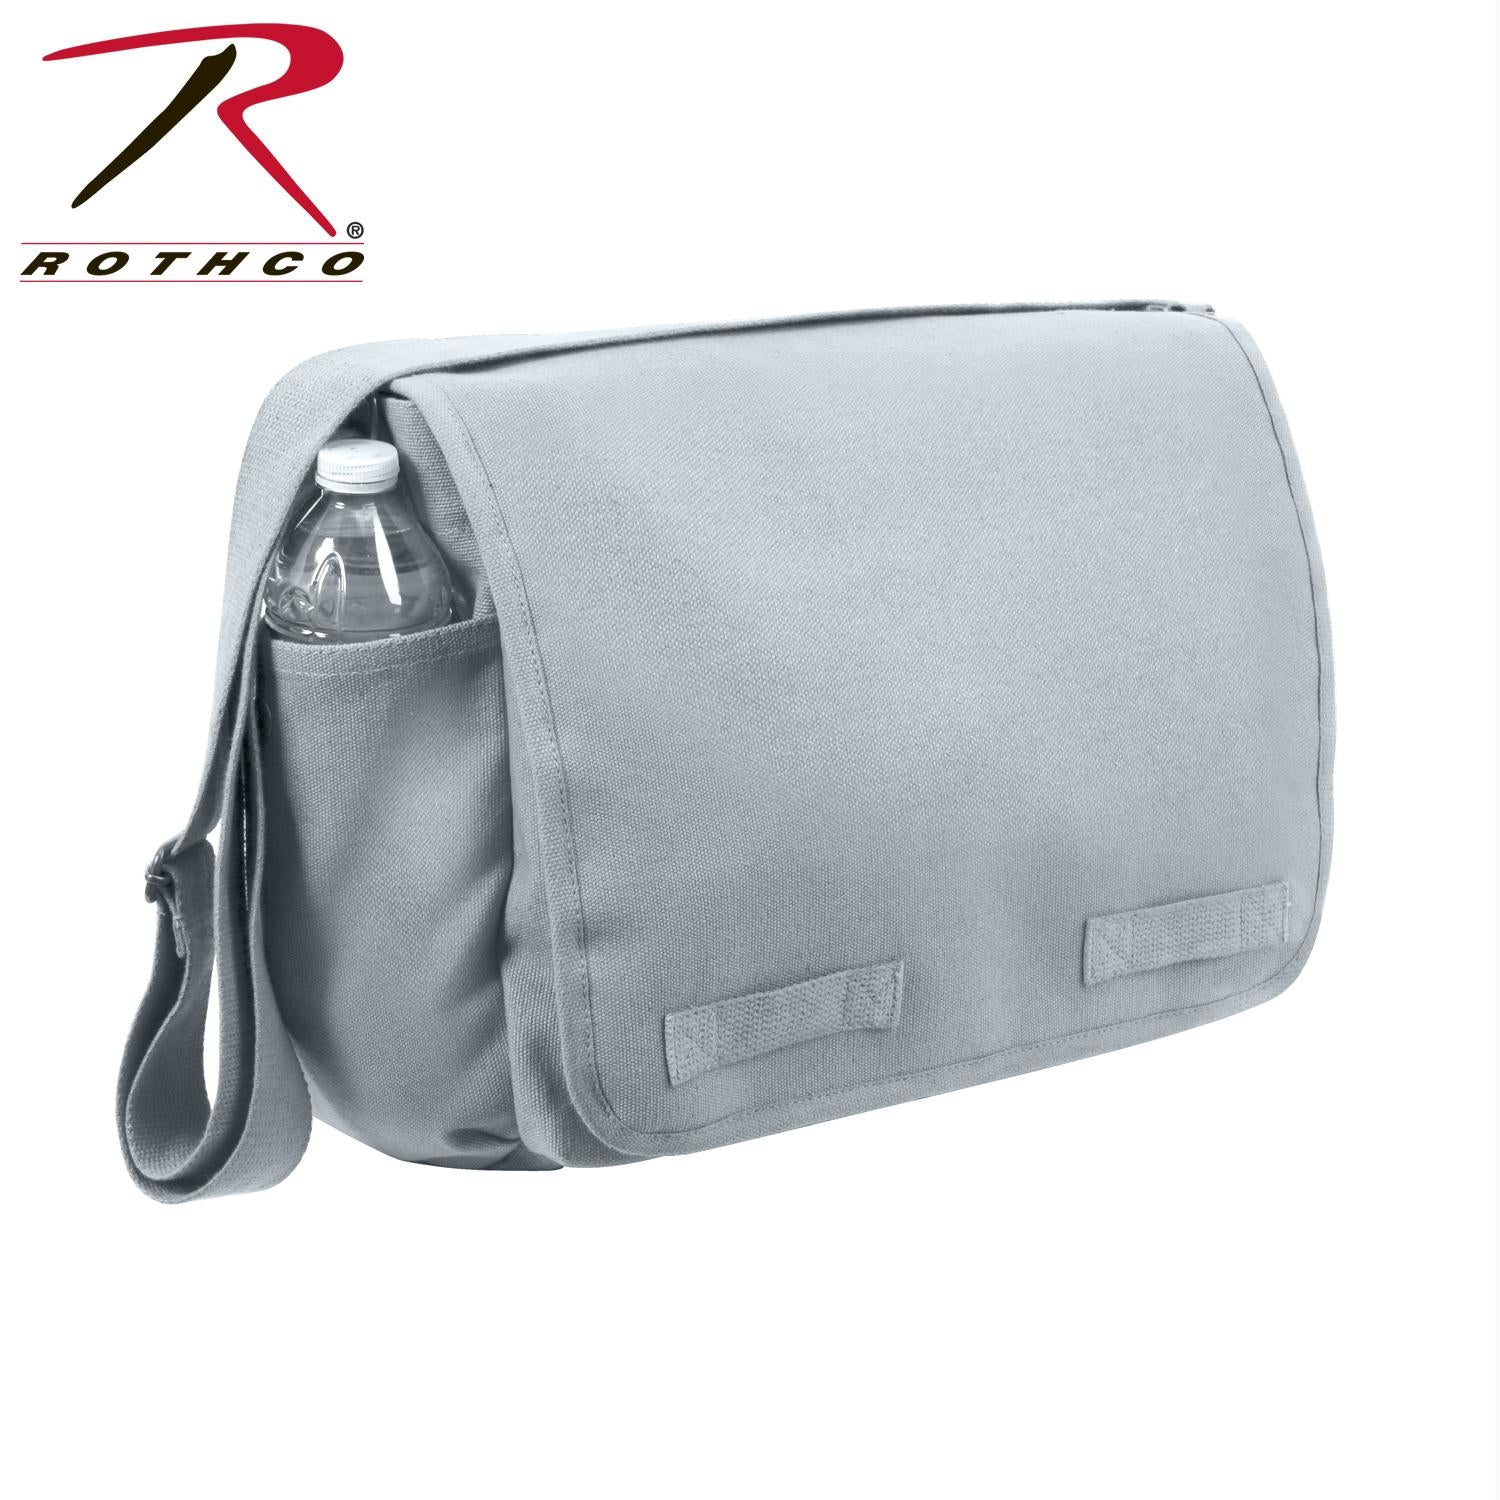 Rothco Vintage Unwashed Canvas Messenger Bag - Grey